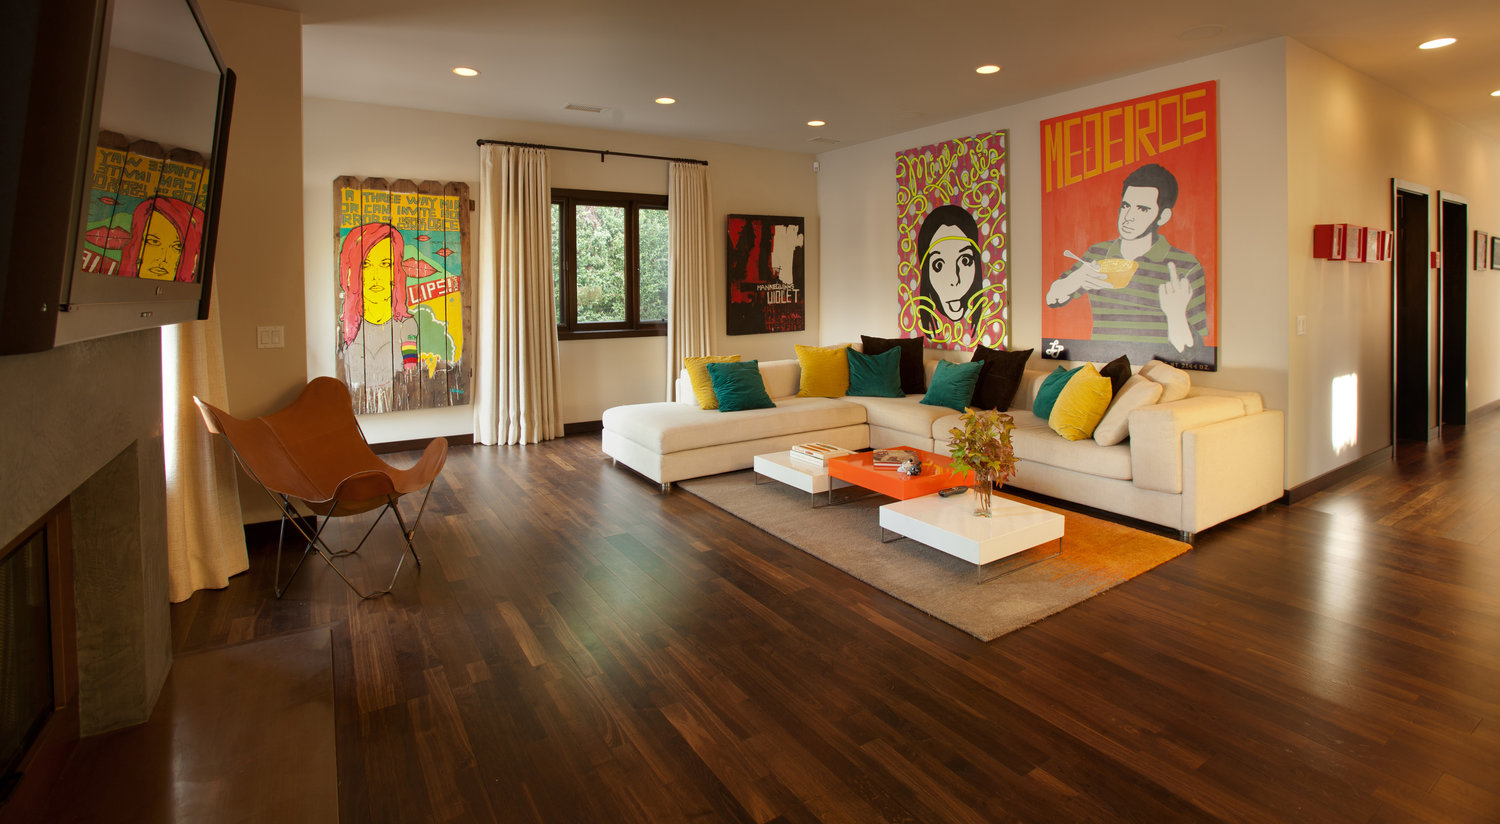 RA Design Group Is A California Studio Specializing In Custom Residential And Commercial Spaces